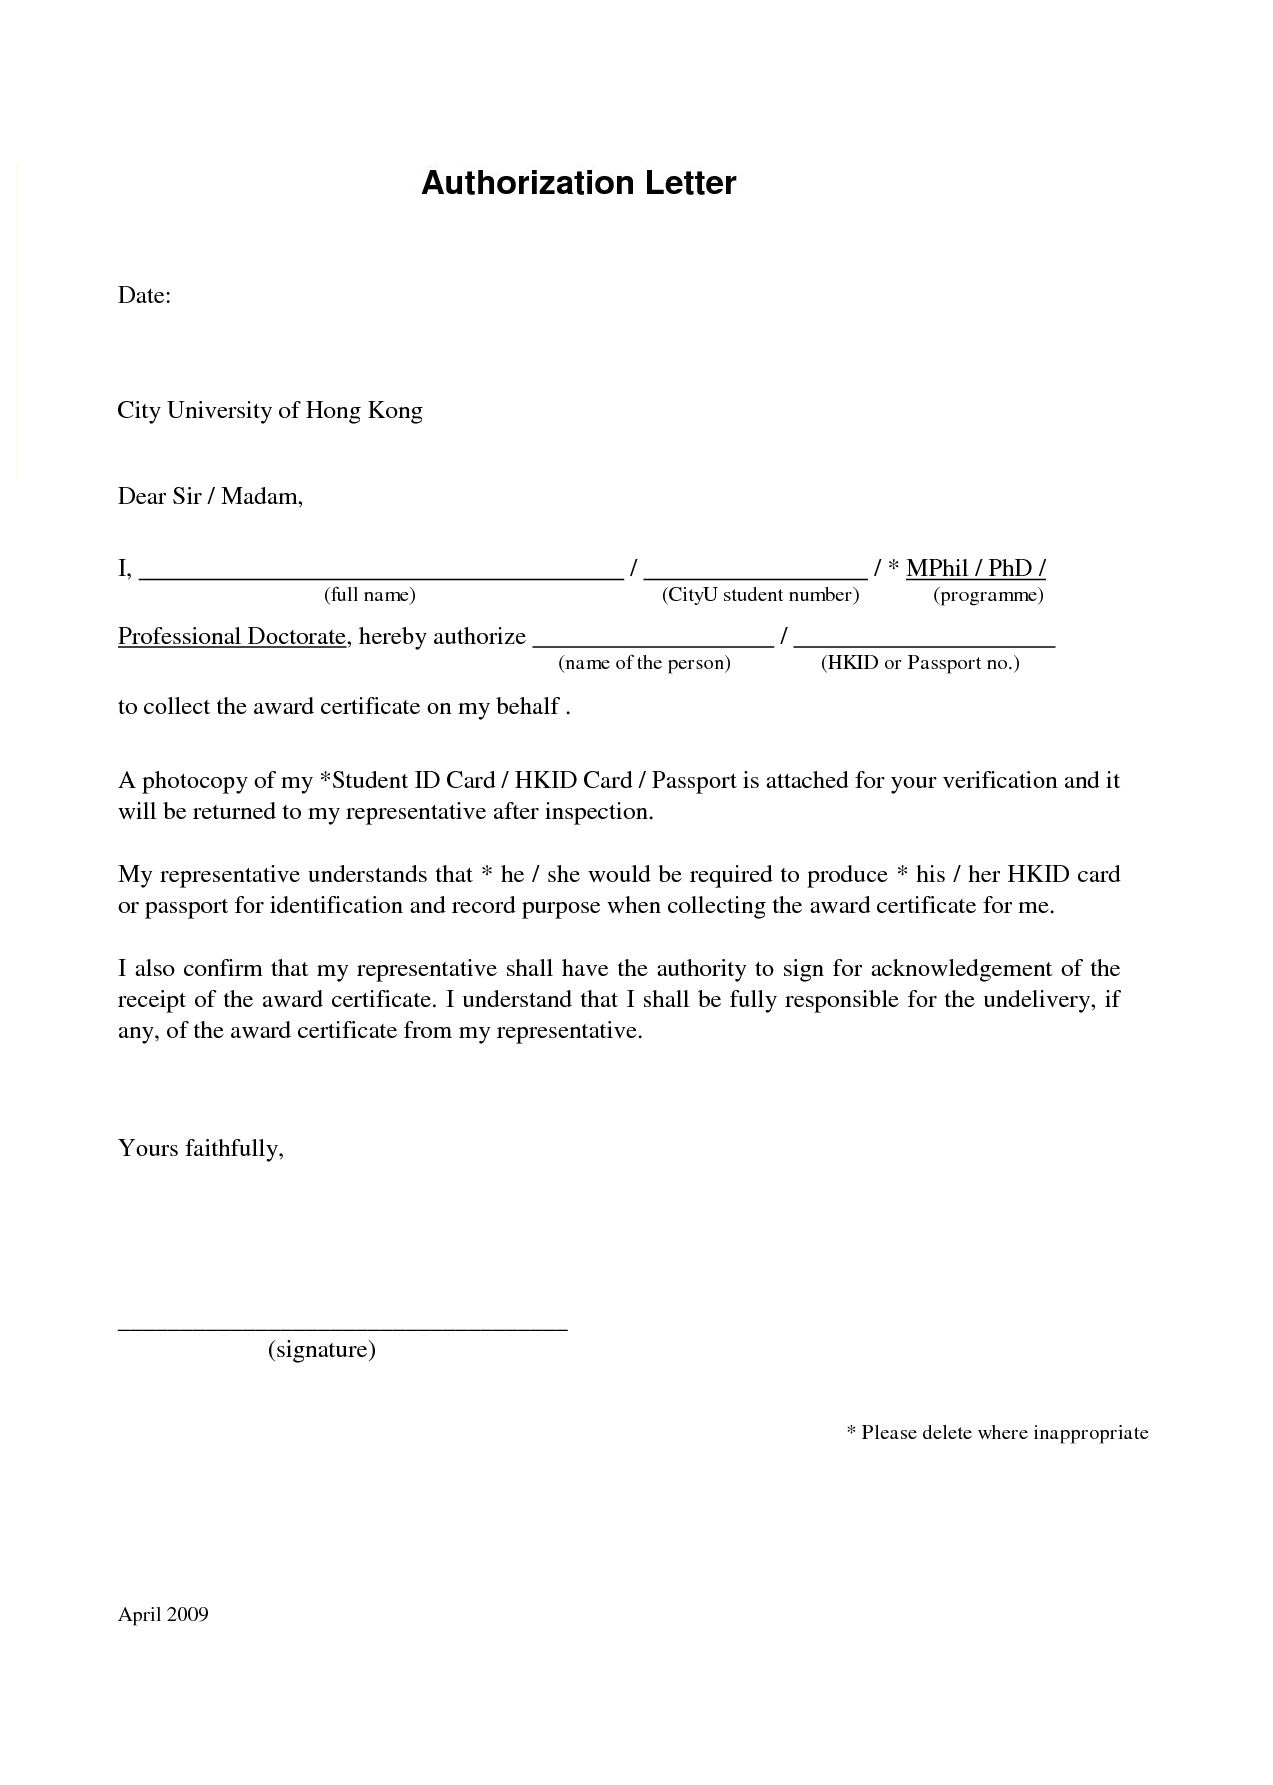 Authorization Letter For Collecting Certificate